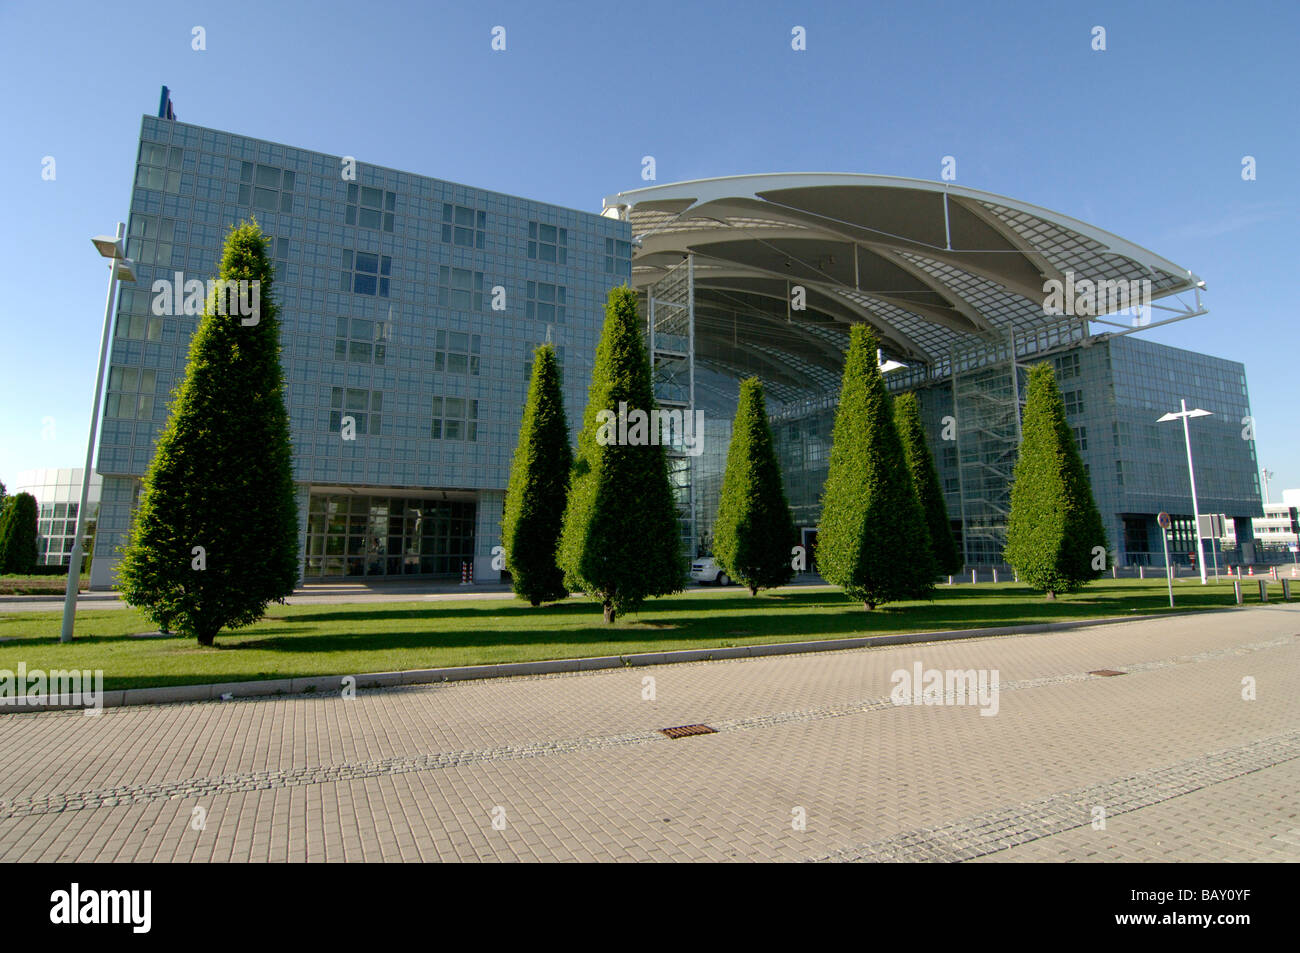 View at the entrance of Franz Joseph Strauss Airport, Munich, Bavaria, Germany - Stock Image